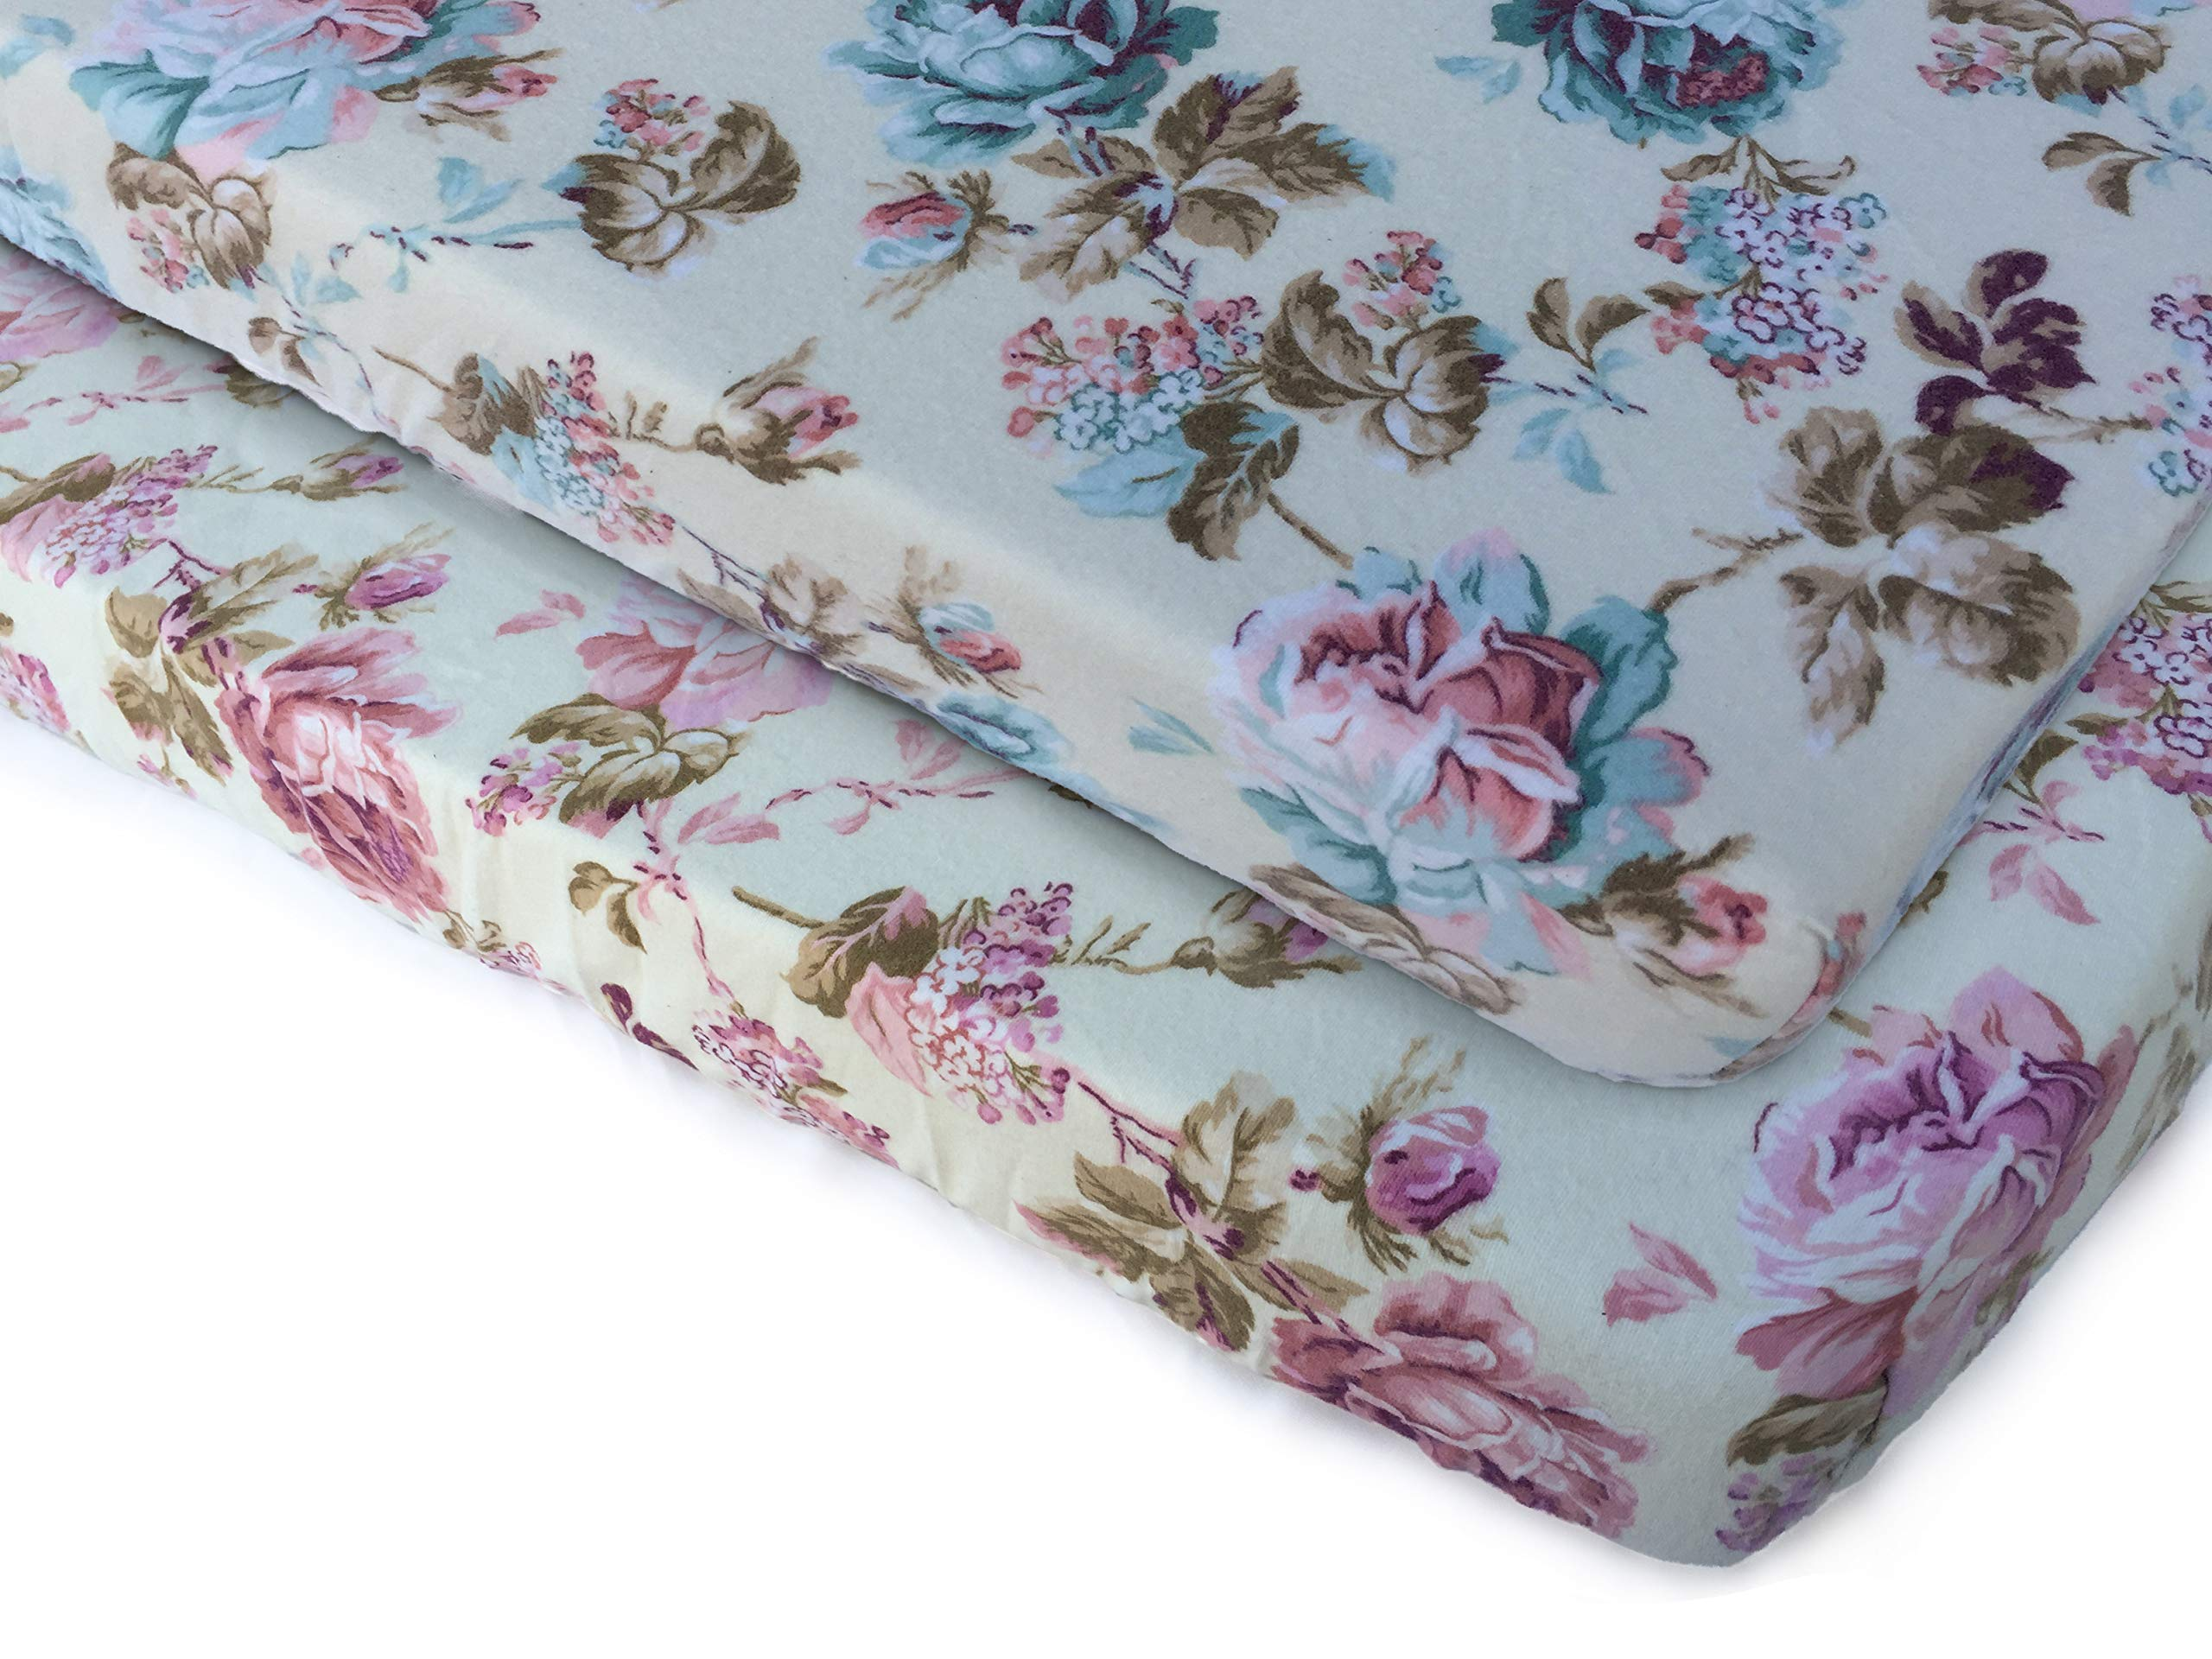 Pack N Play Playard Sheet Set-2 Pack 100% Premium Cotton Flannel,Super Soft, Fits Perfectly Any Standard Playard Mattress up to 3'' Thick, Vintage Roses